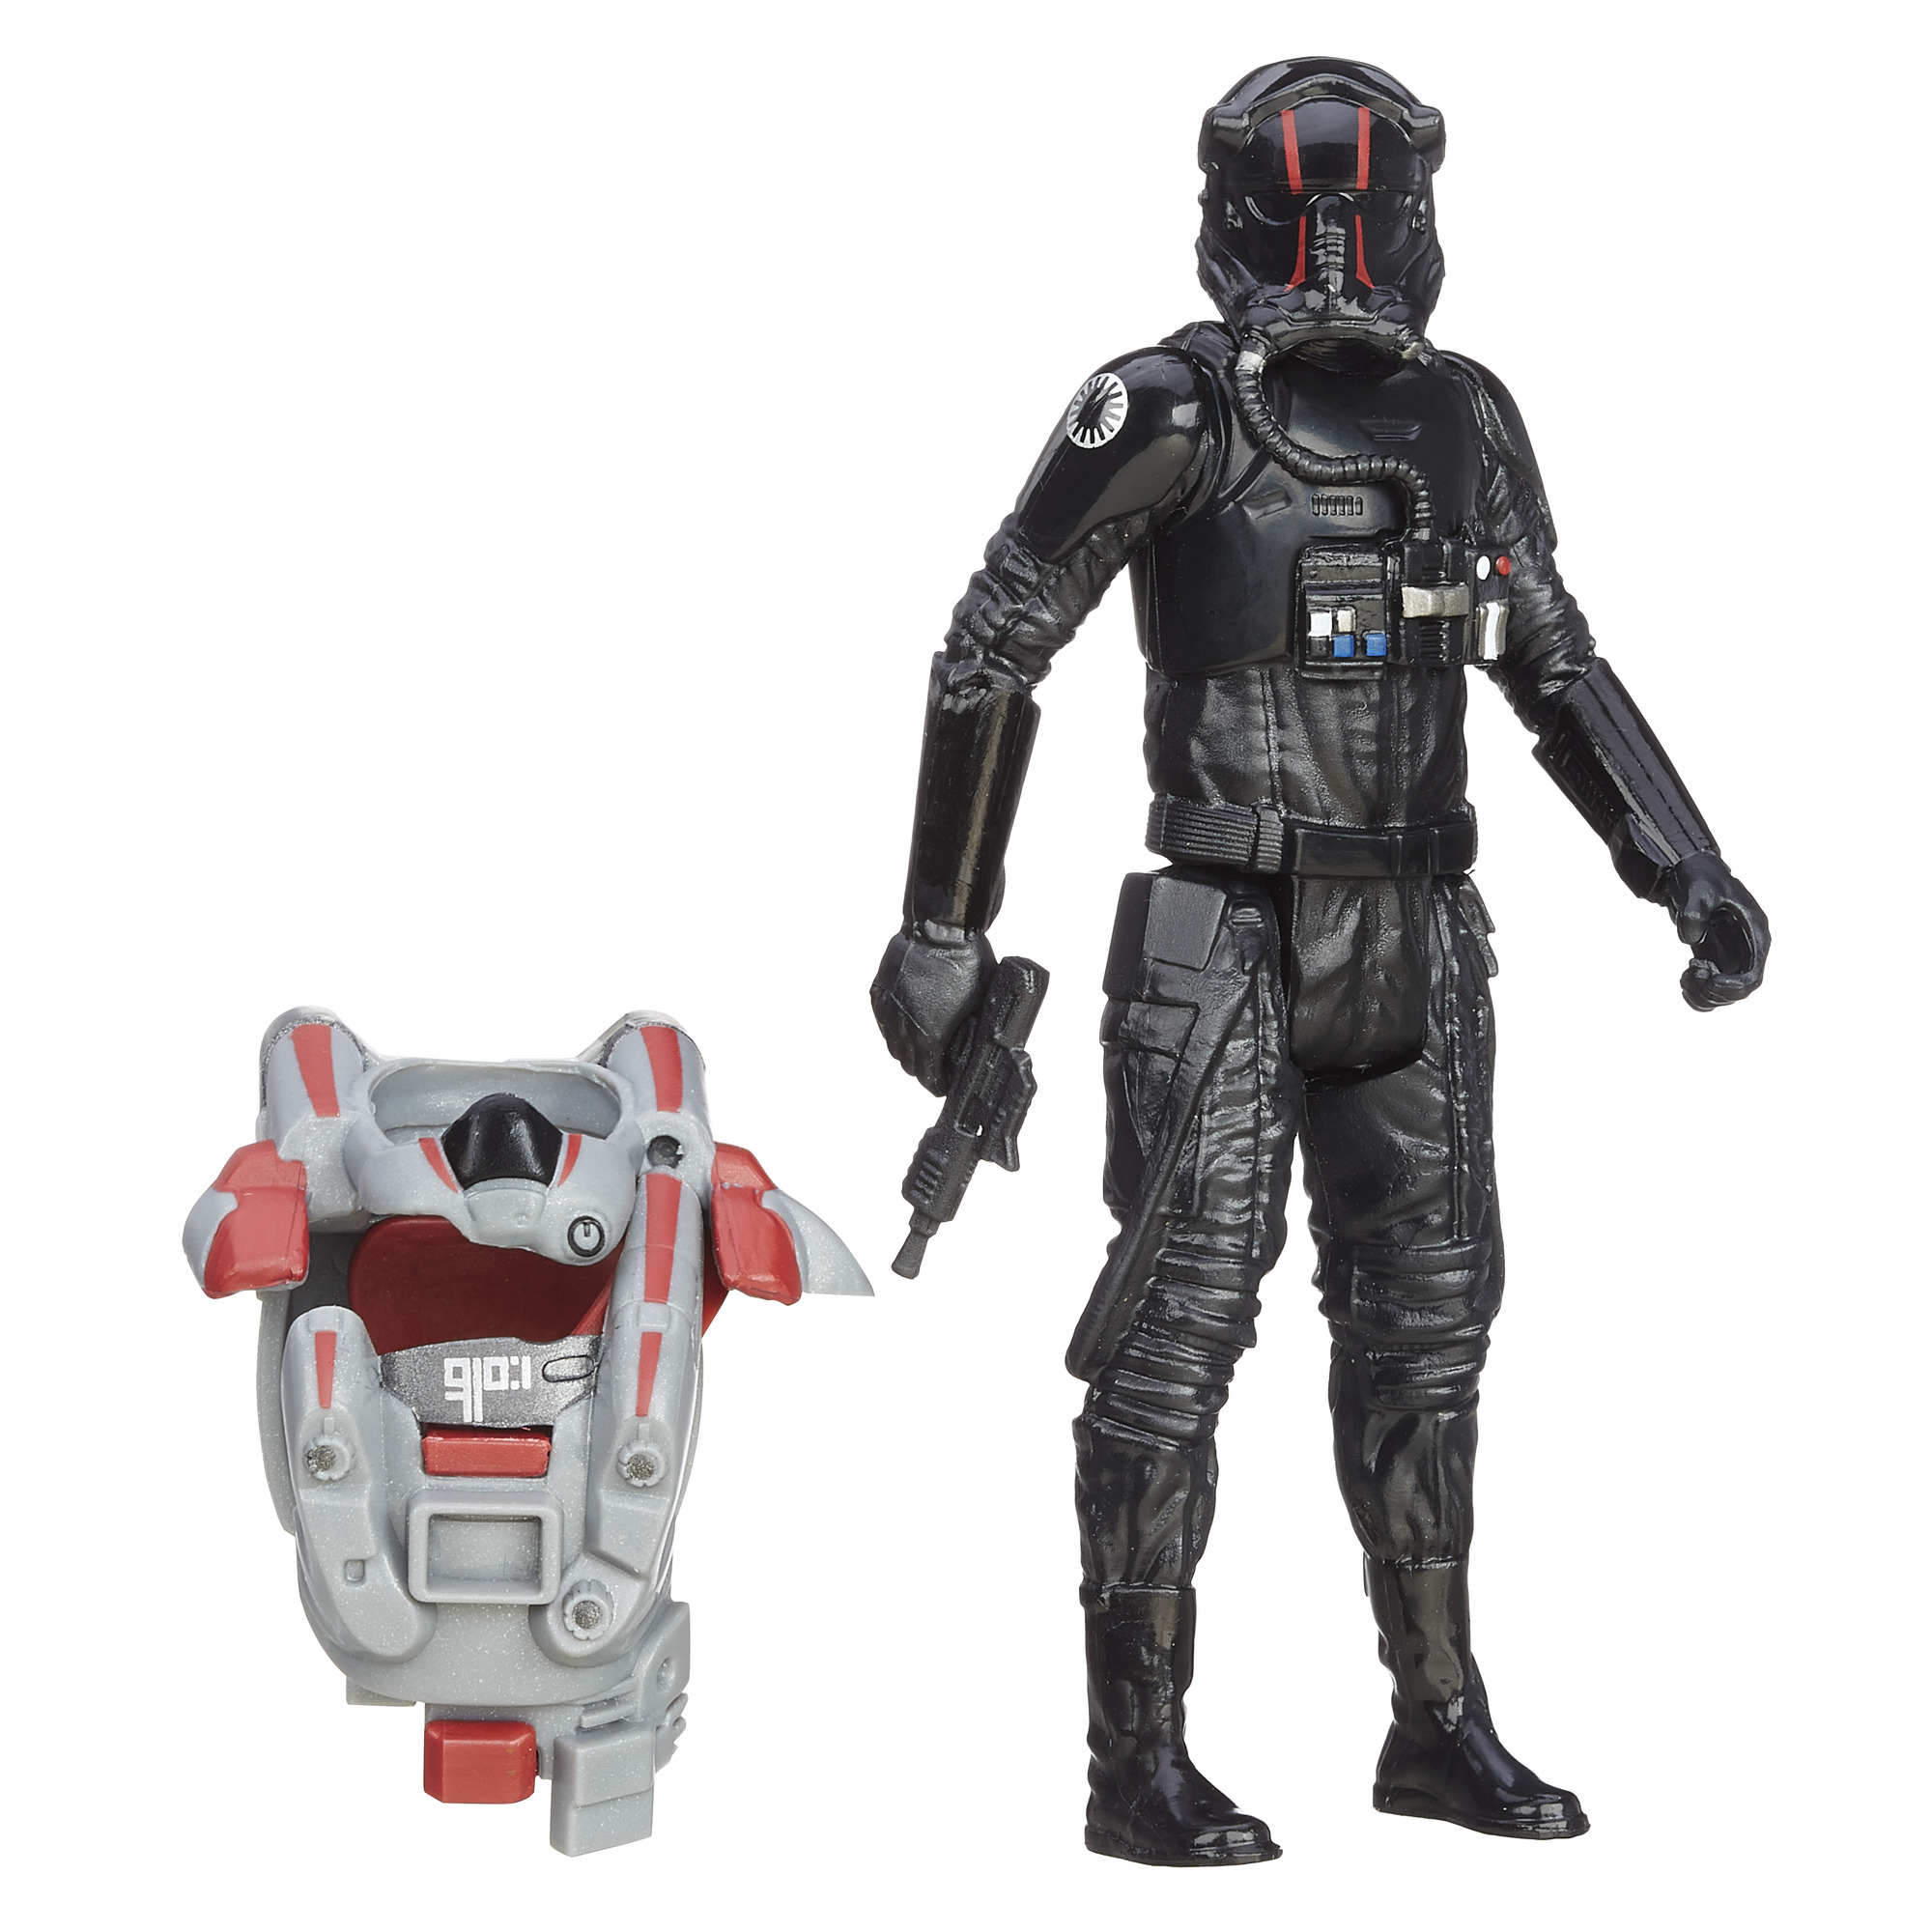 Hasbro Star Wars: The Force Awakens Space Mission Armor First Order TIE Fighter Pilot PartNumber: 004W007284758010P